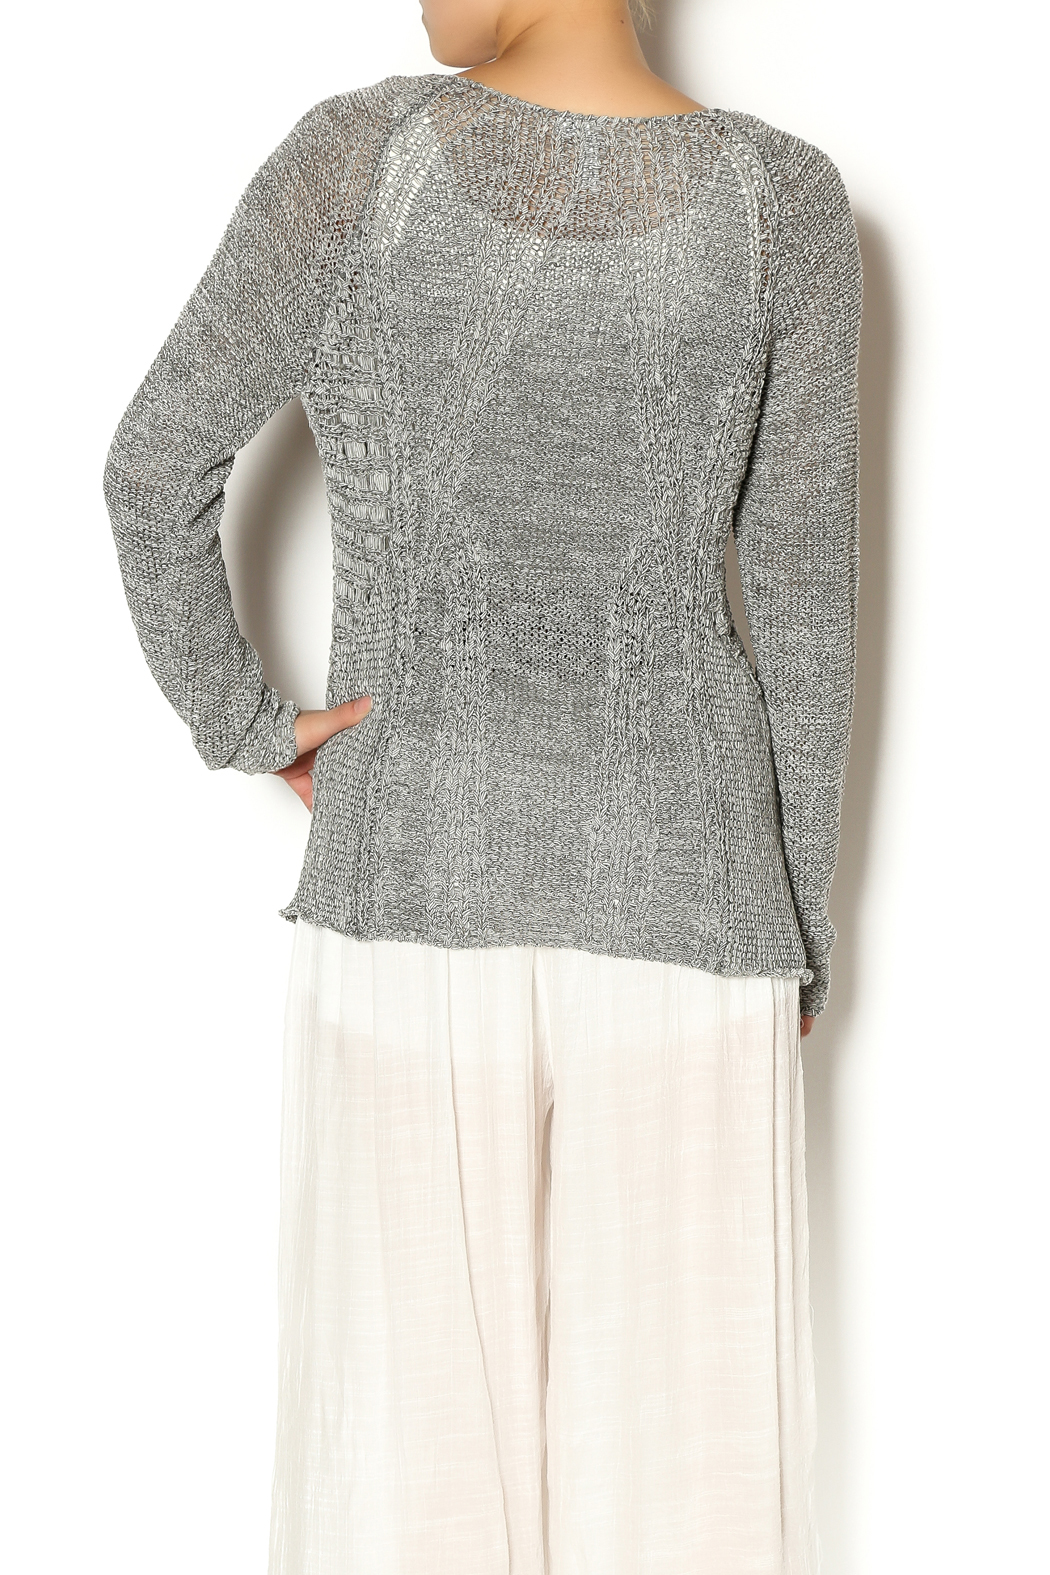 Katherine Barclay Gray Knit Sweater - Back Cropped Image